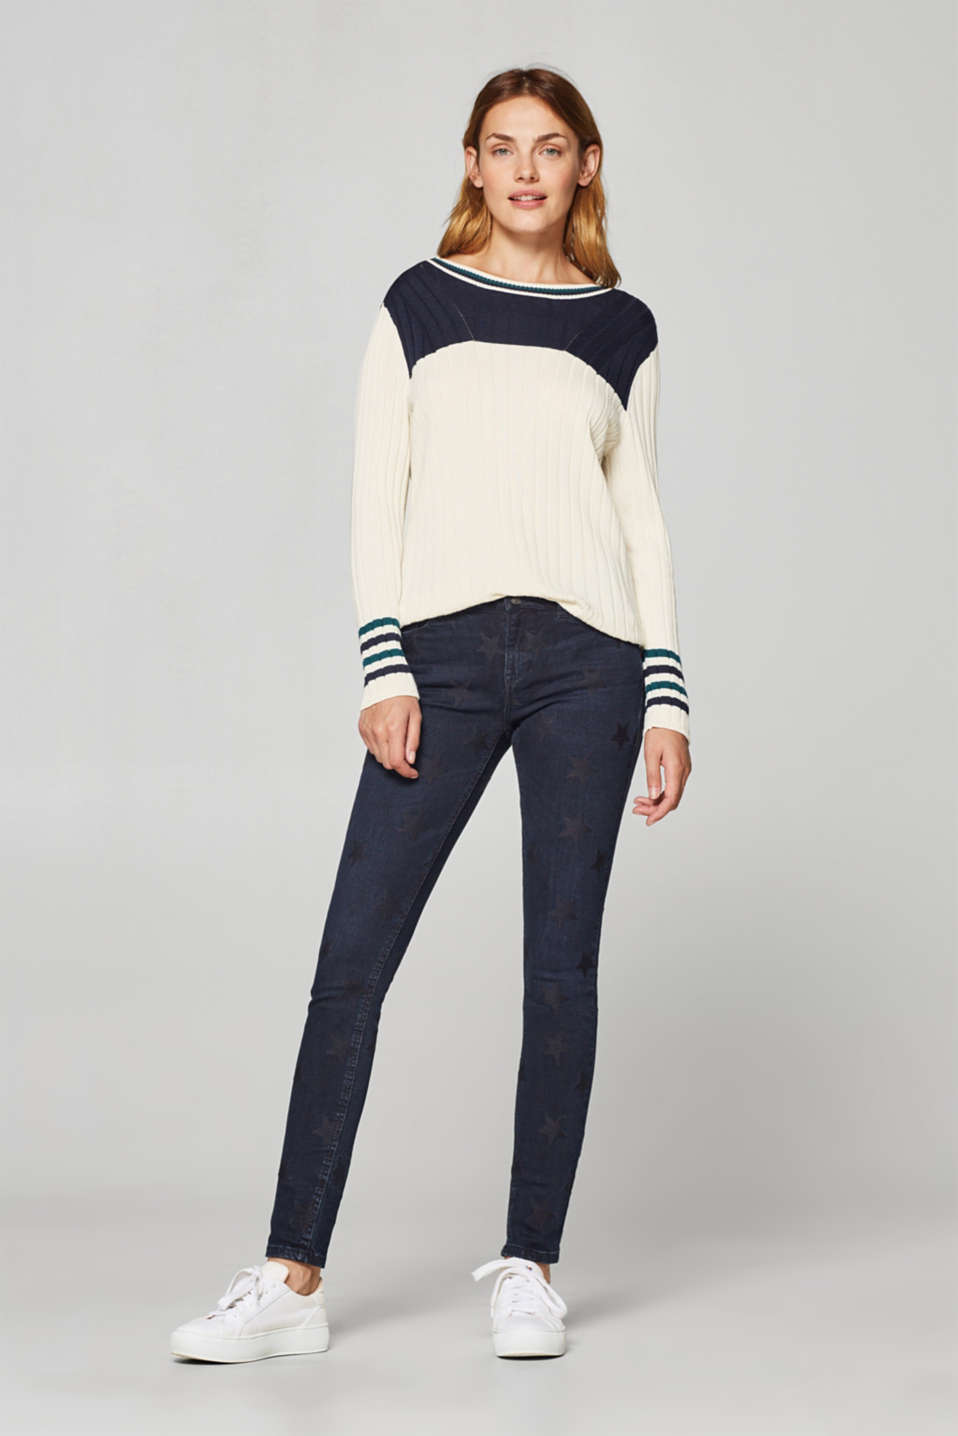 Esprit - Stretch jeans with star embroidery